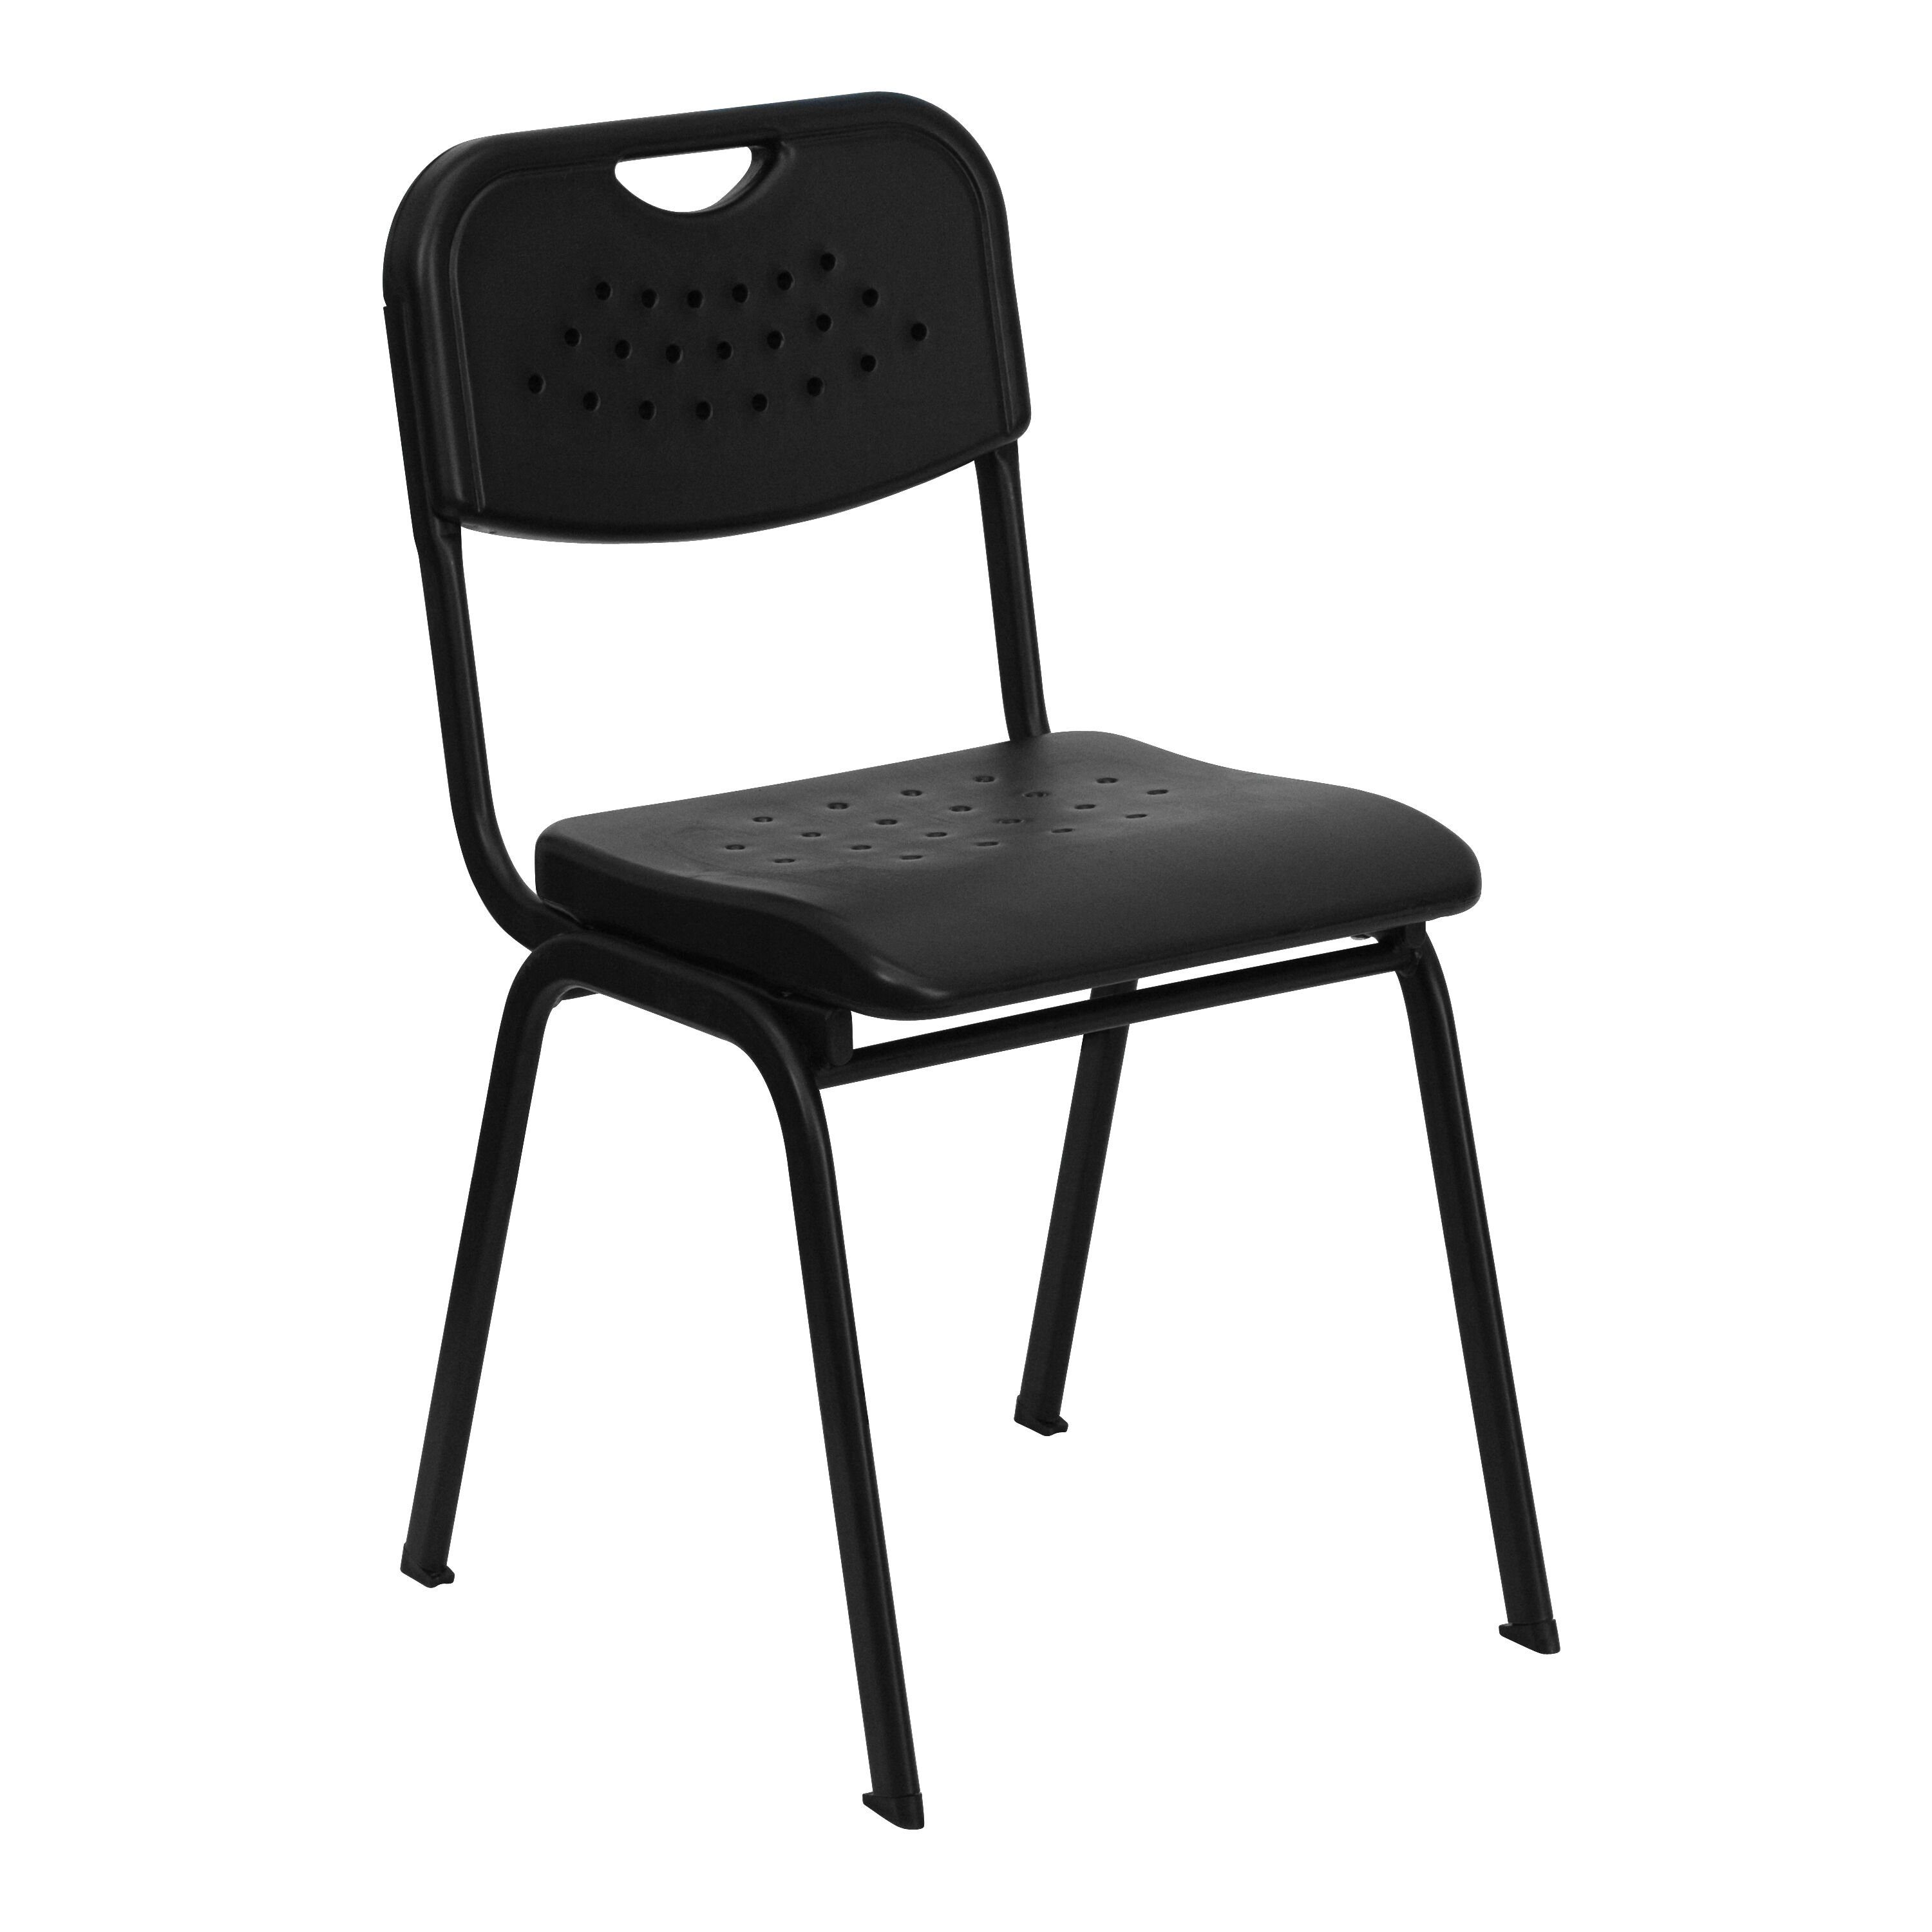 Merveilleux HERCULES Series 880 Lb. Capacity Black Plastic Stack Chair With Black Frame